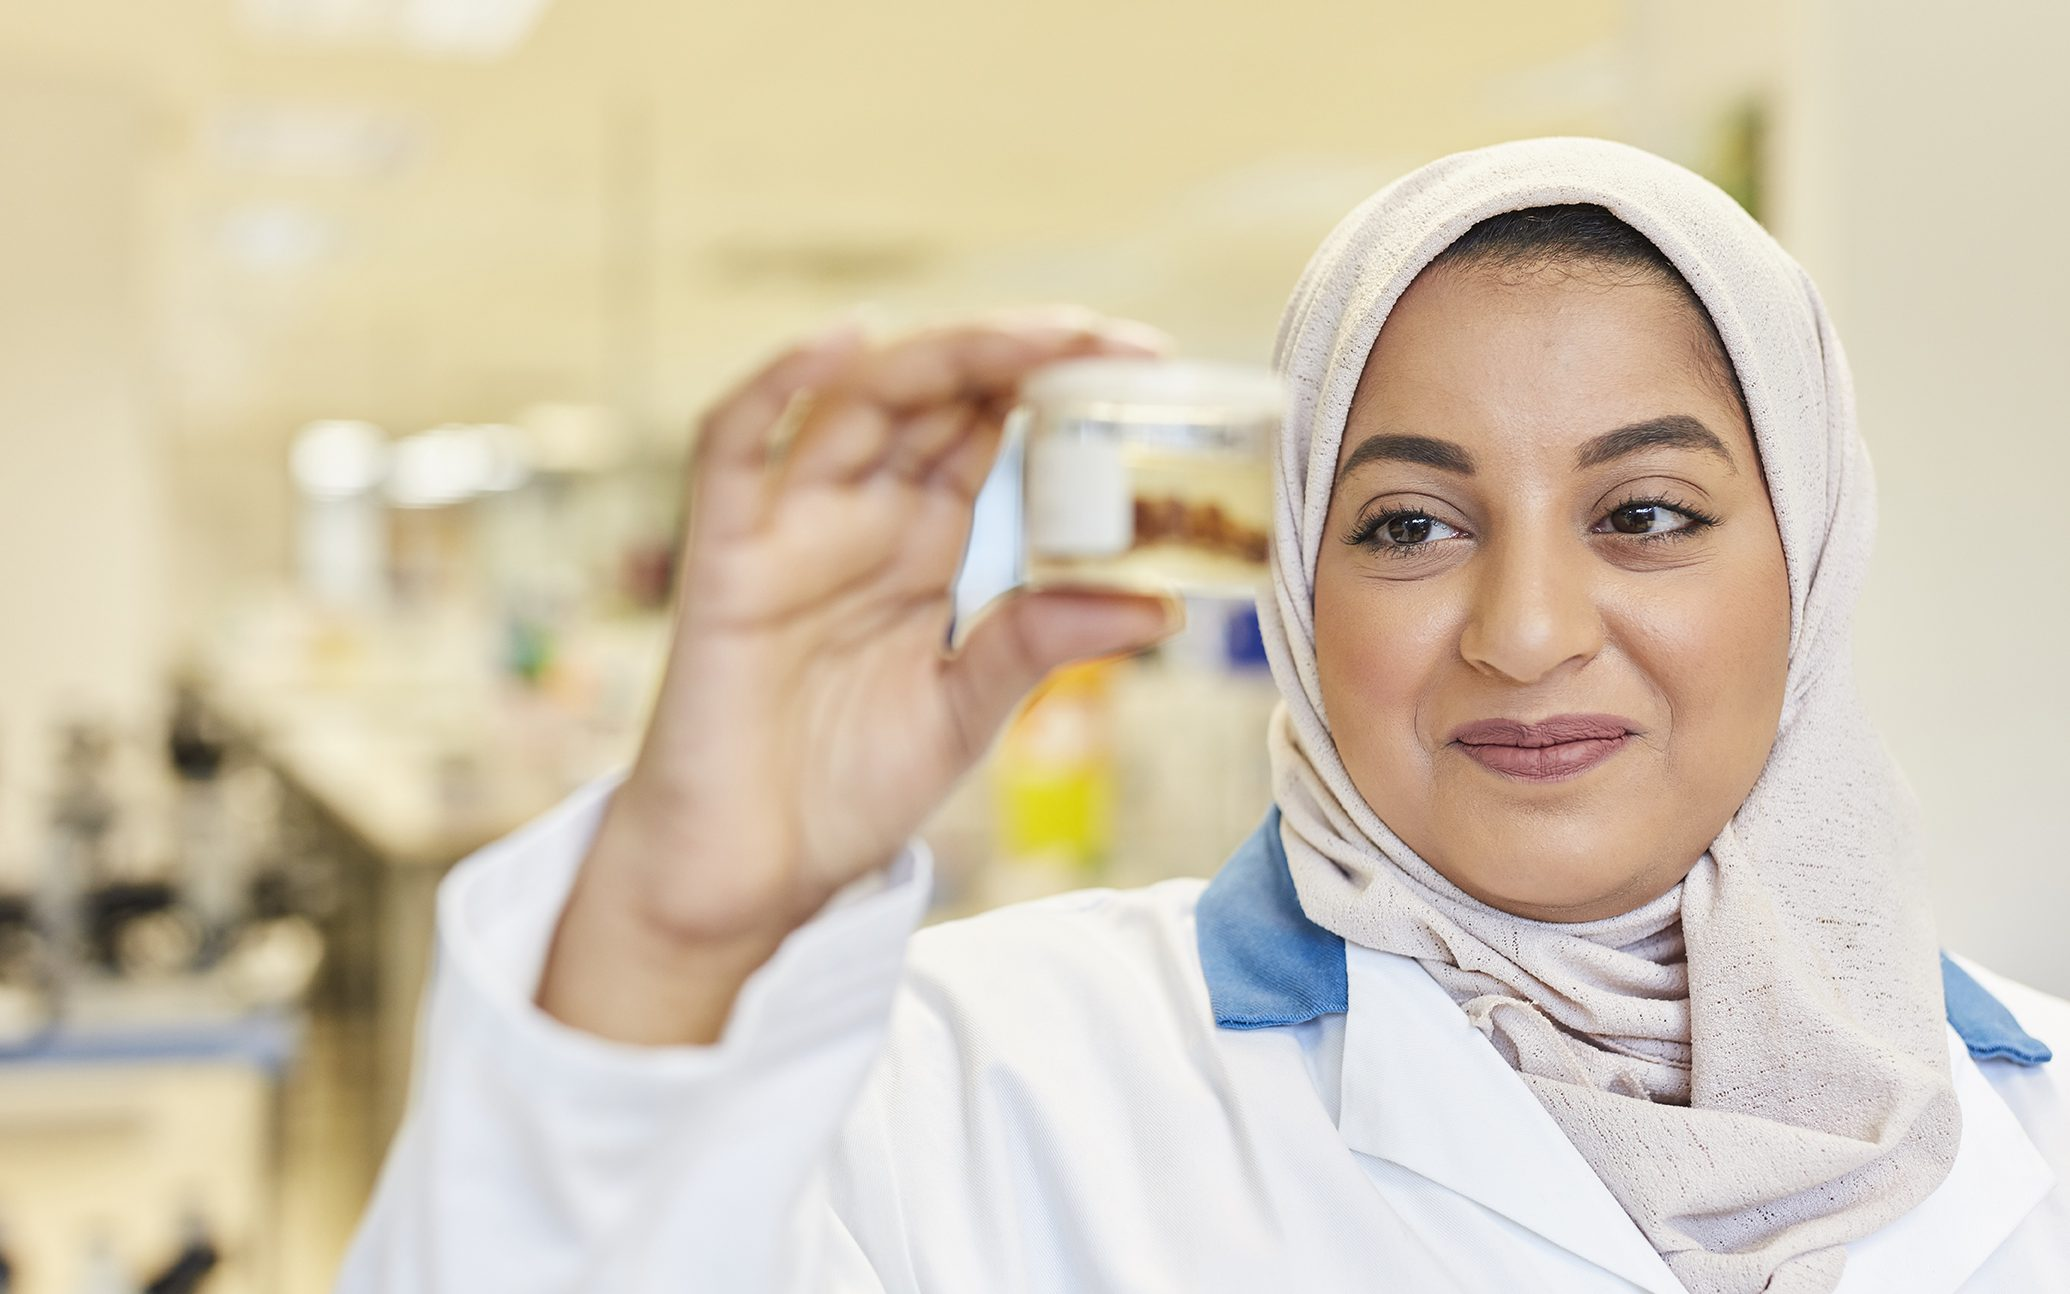 An image of a female scientist wearing a headscarf and holding a scientific sample in a pot